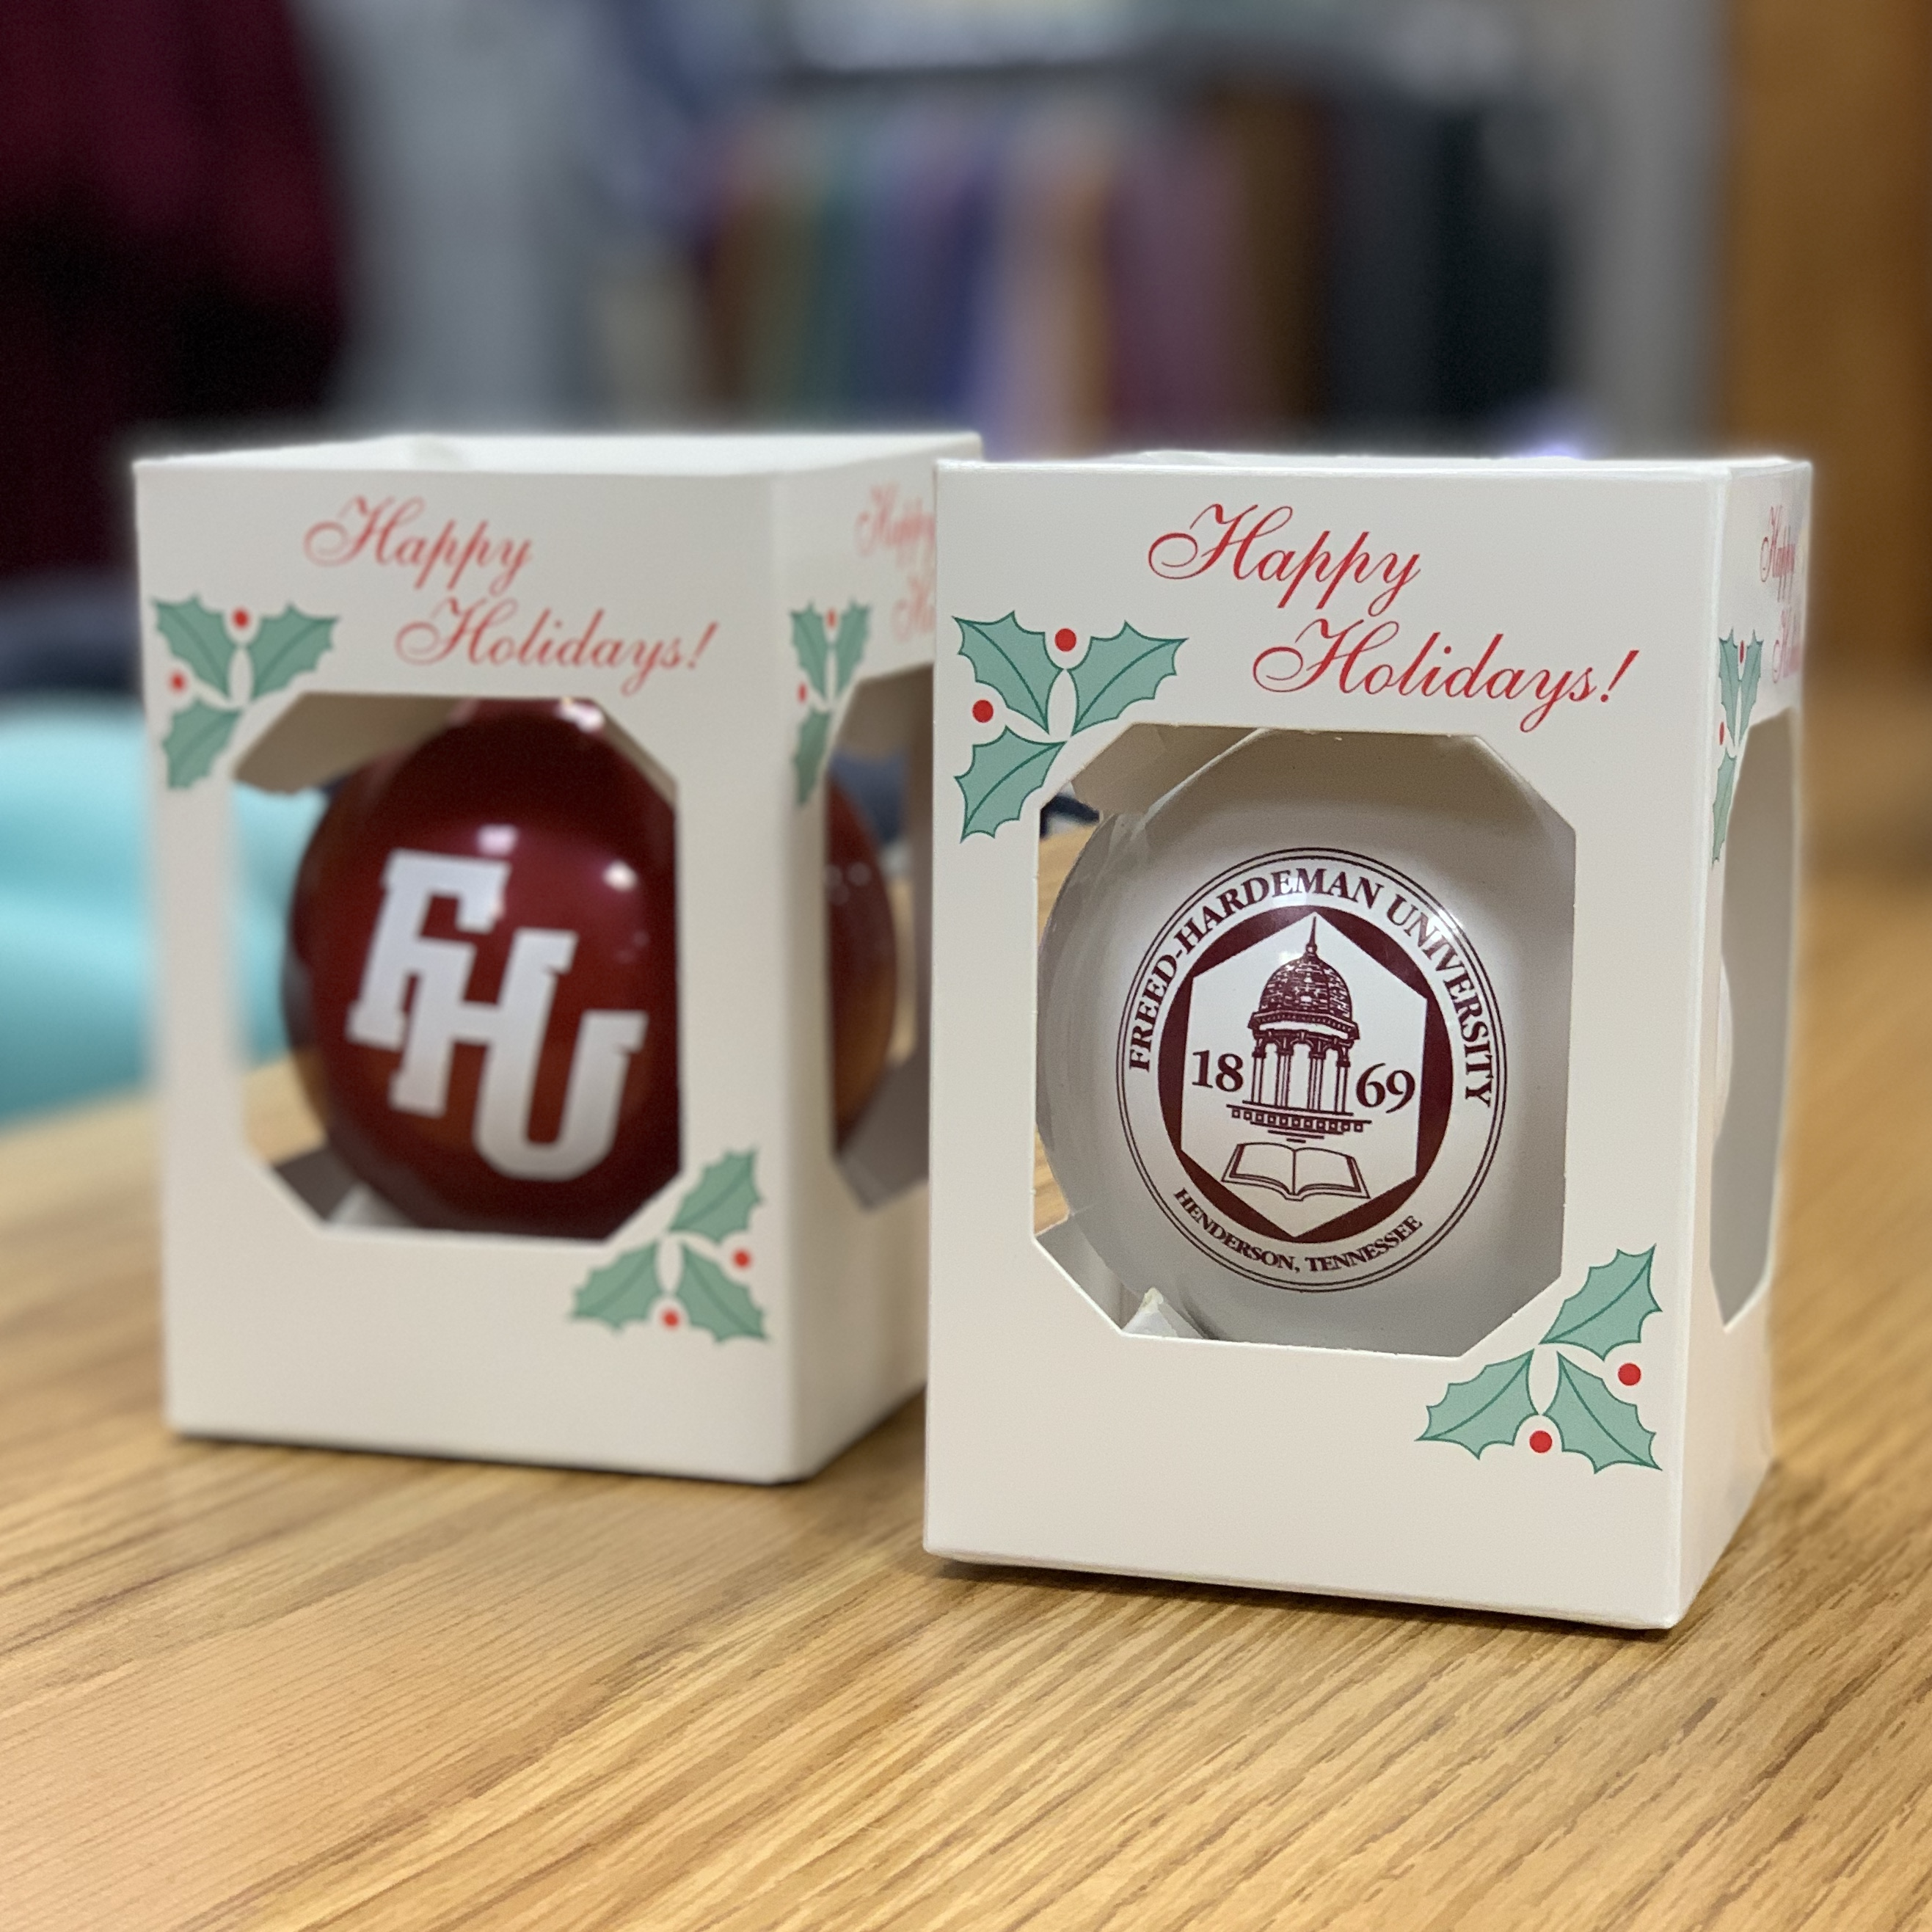 FHU Christmas Ornaments - 2 Pack